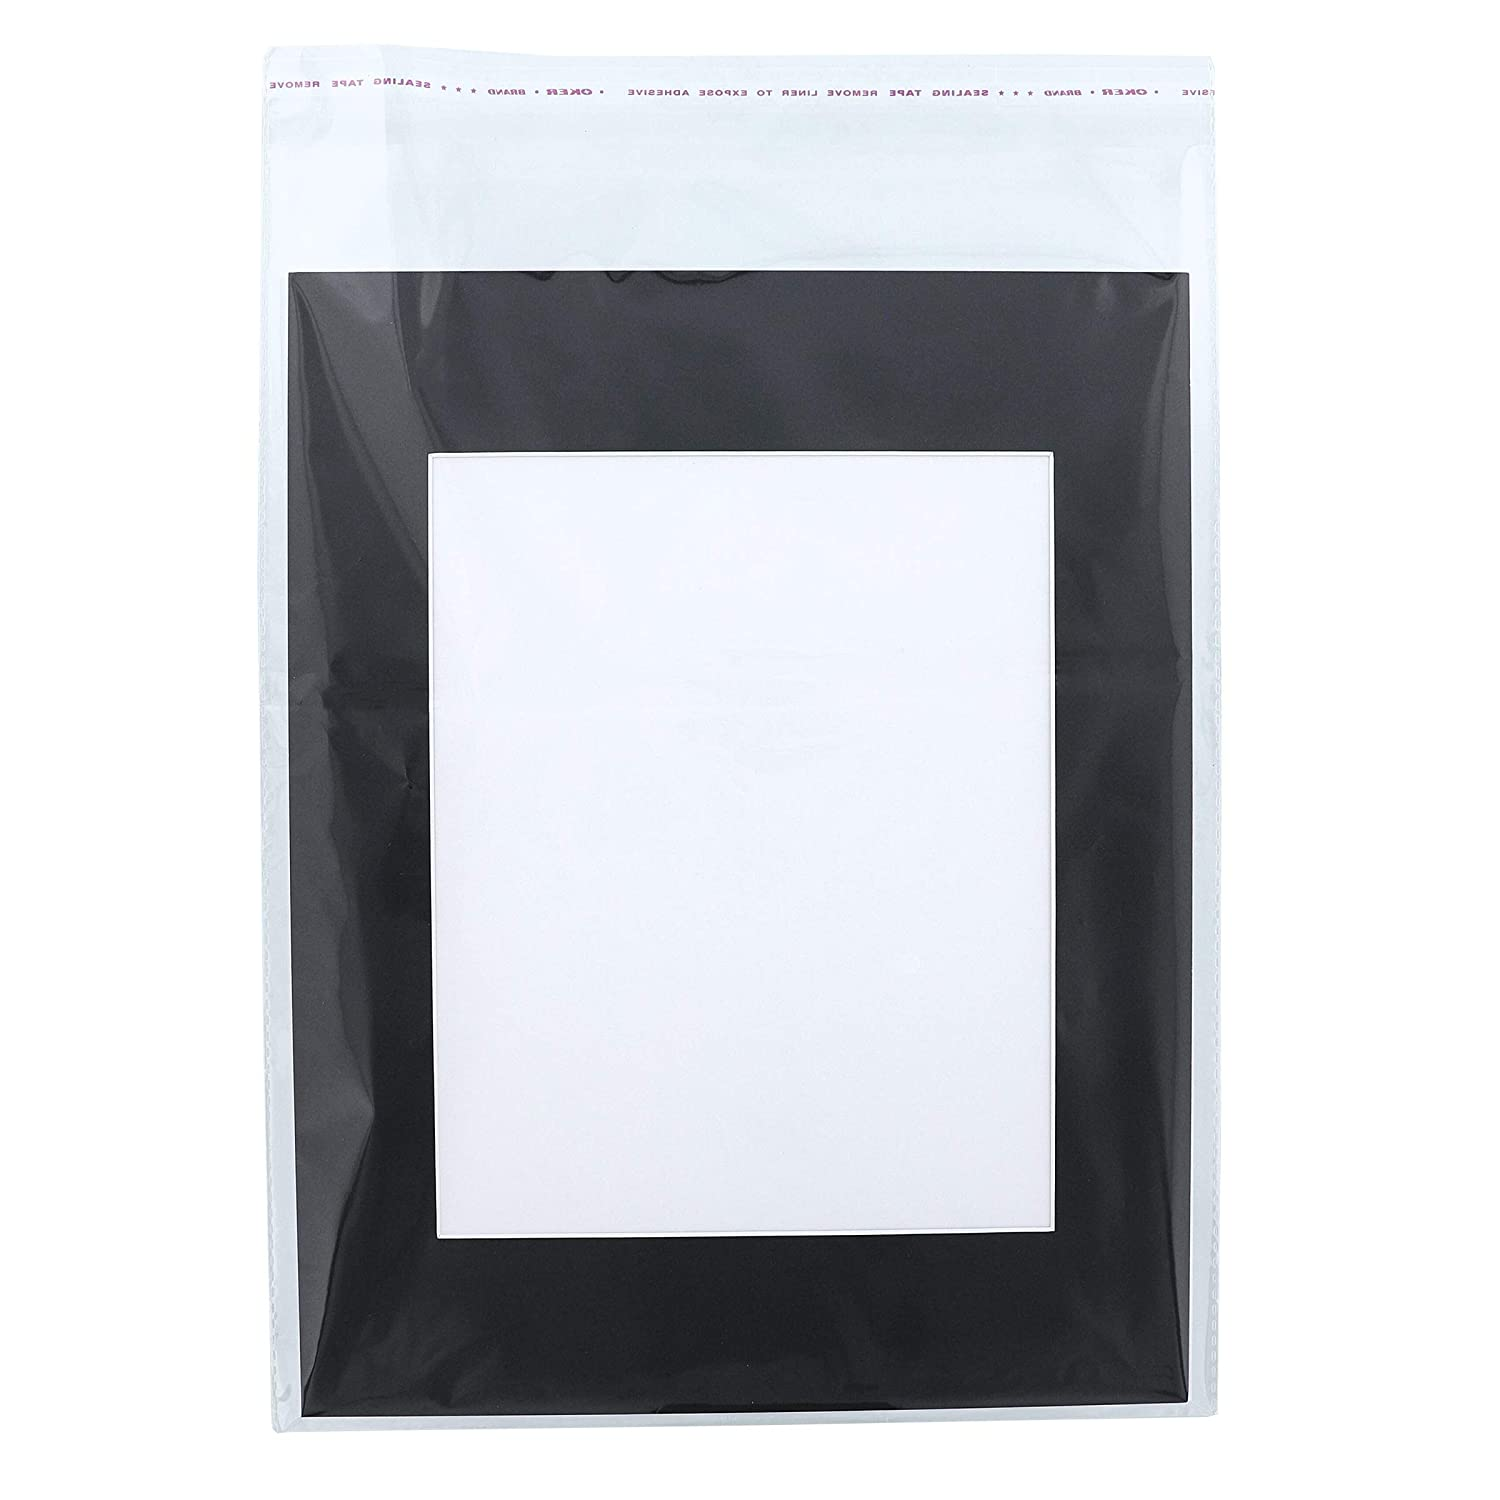 Genie Crafts 15-Pack Black 11 x 14 Inch Picture Matted Frame Boards for 8x10 Photos